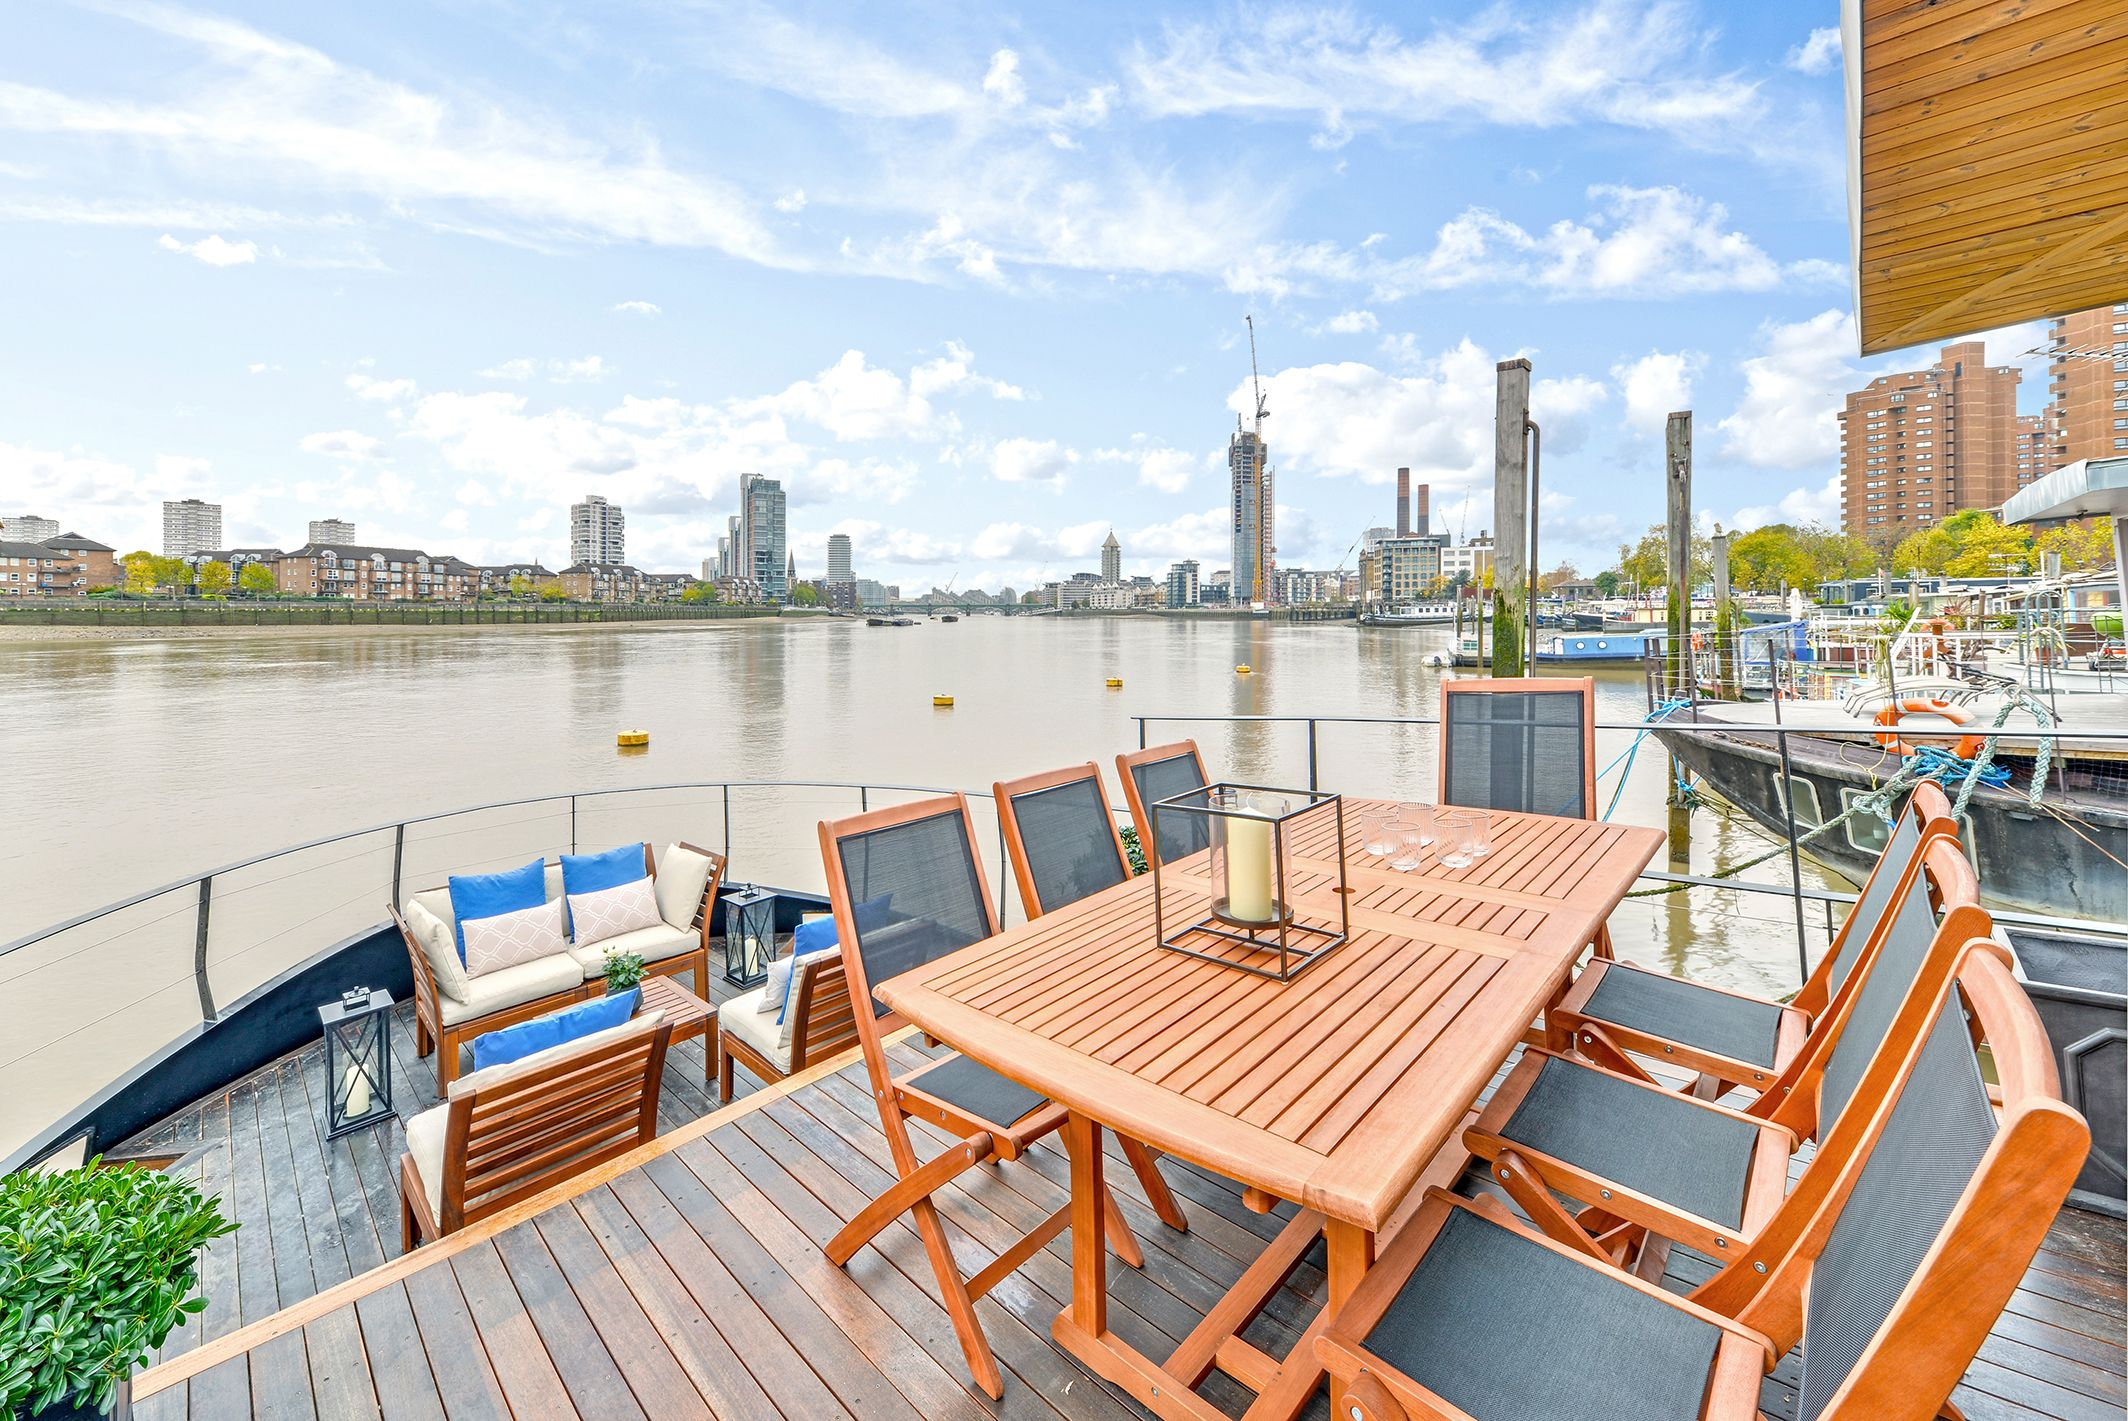 This new build houseboat in Chelsea is on sale for £1.7 million